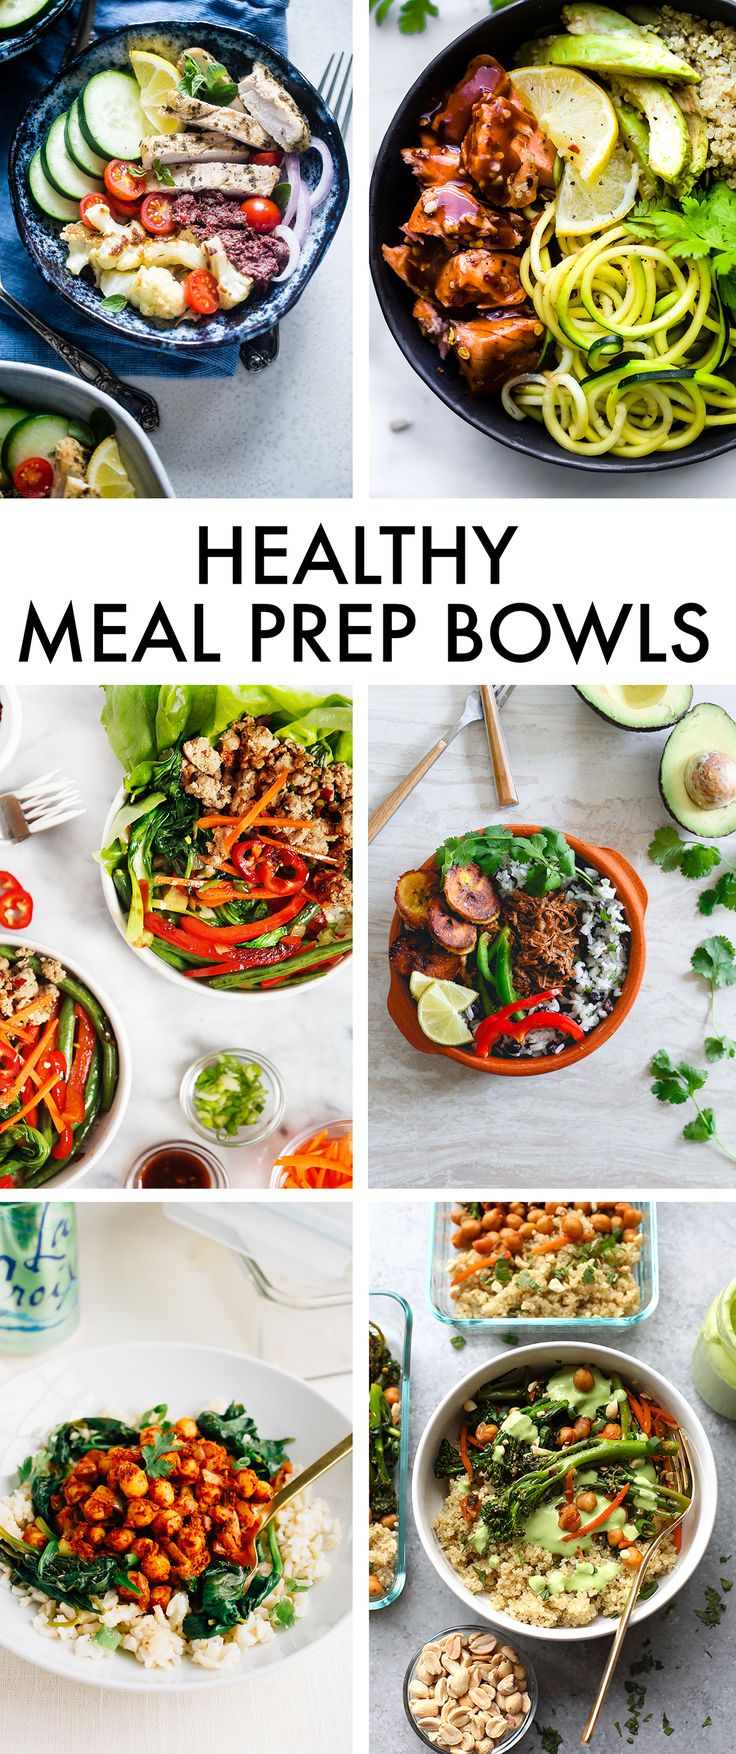 Meal-Prep Vegetarian Kung Pao Quinoa Bowls + 5 more bowl recipes!